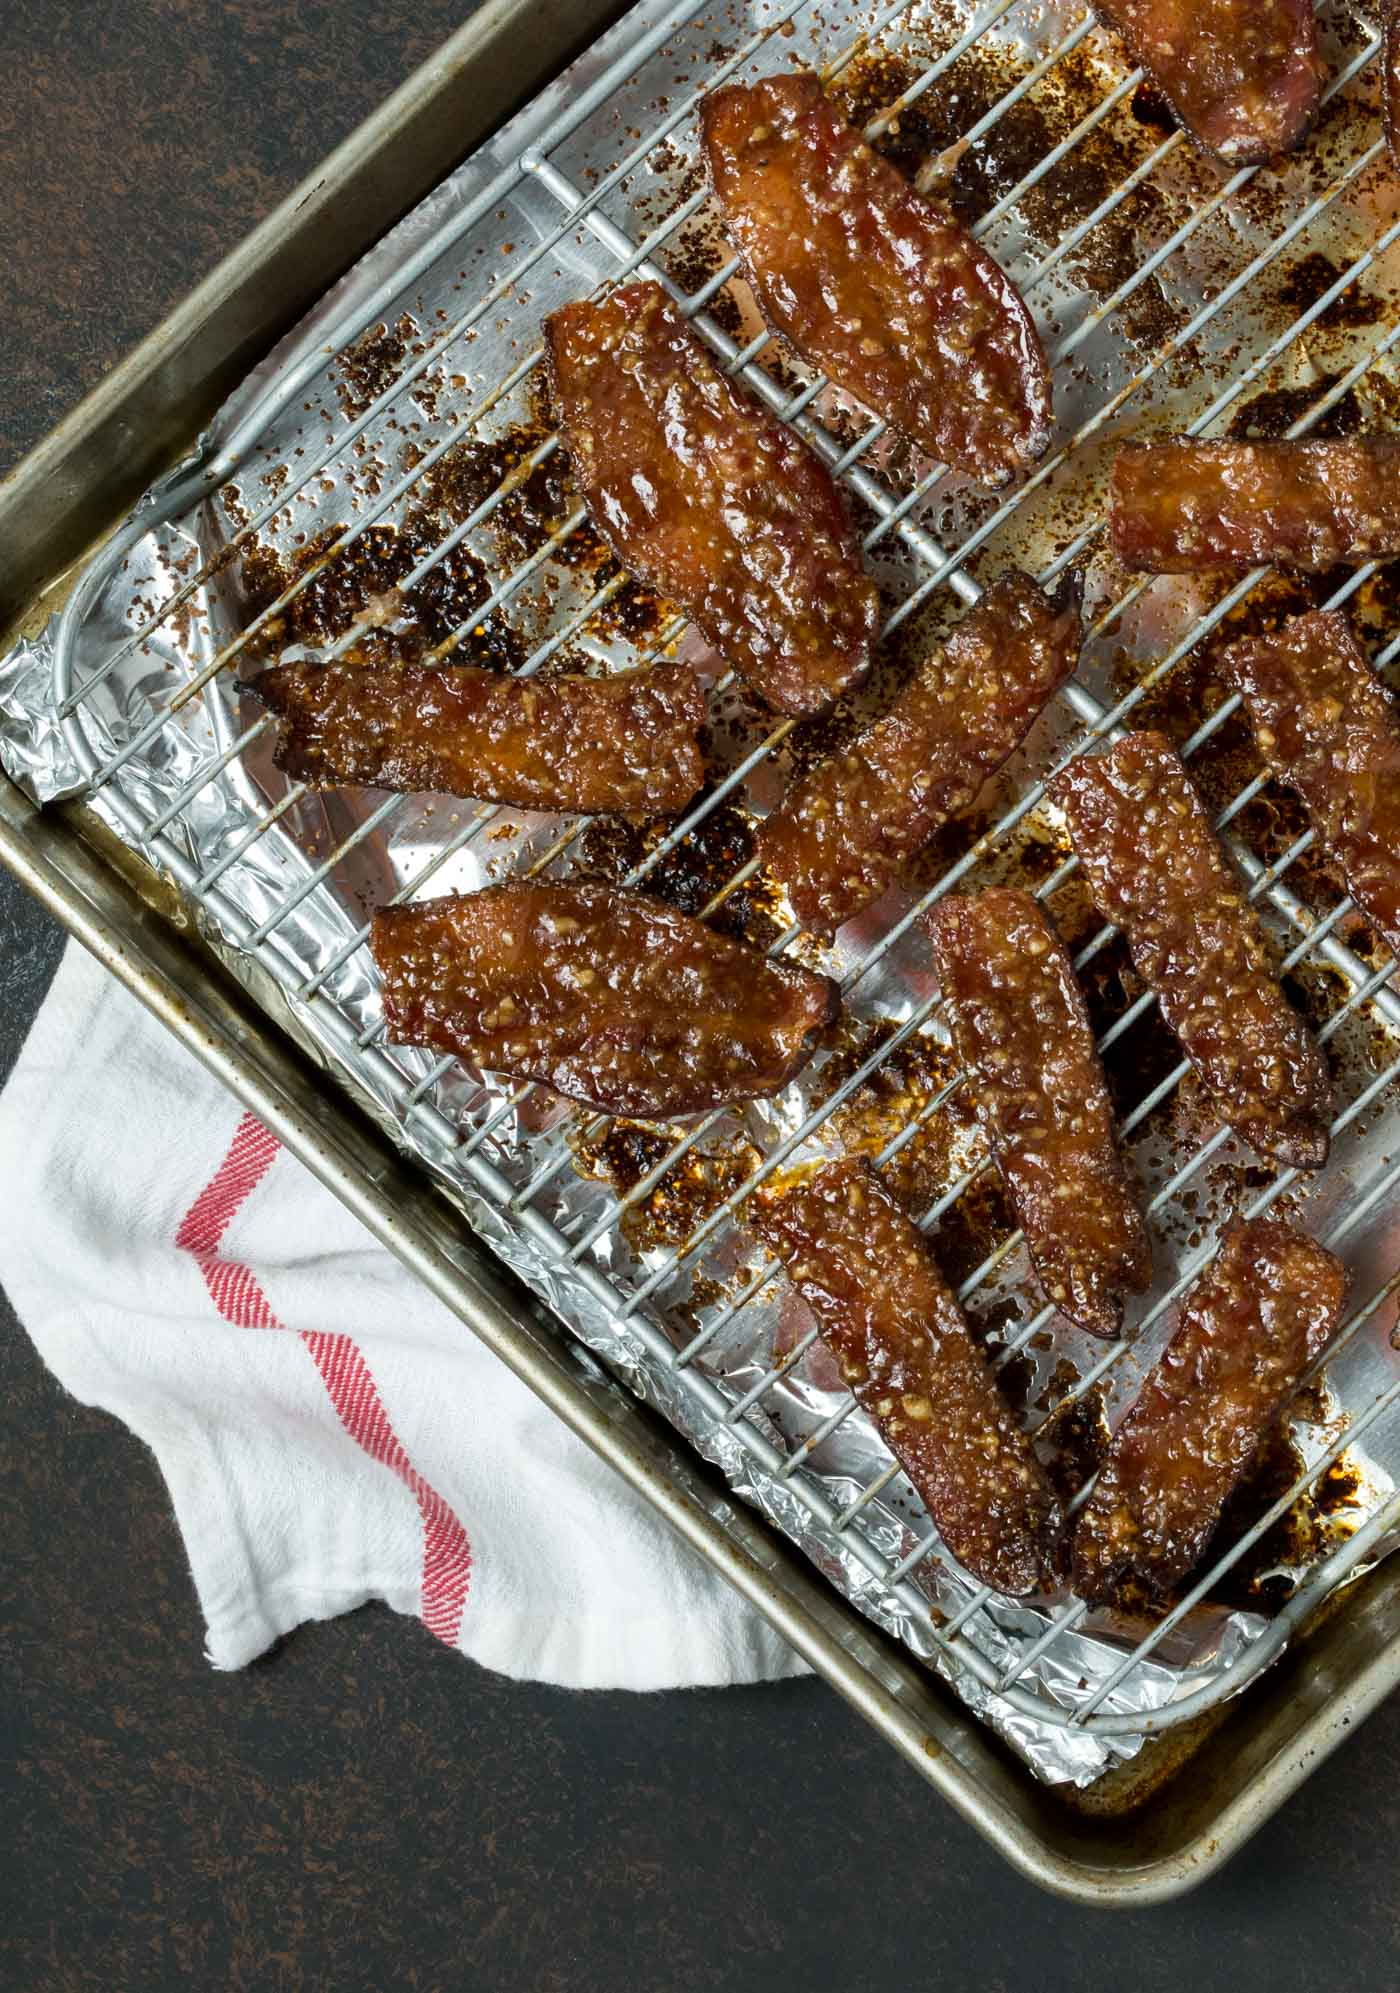 Candied Bacon strips on cooling rack with white linen underneath.